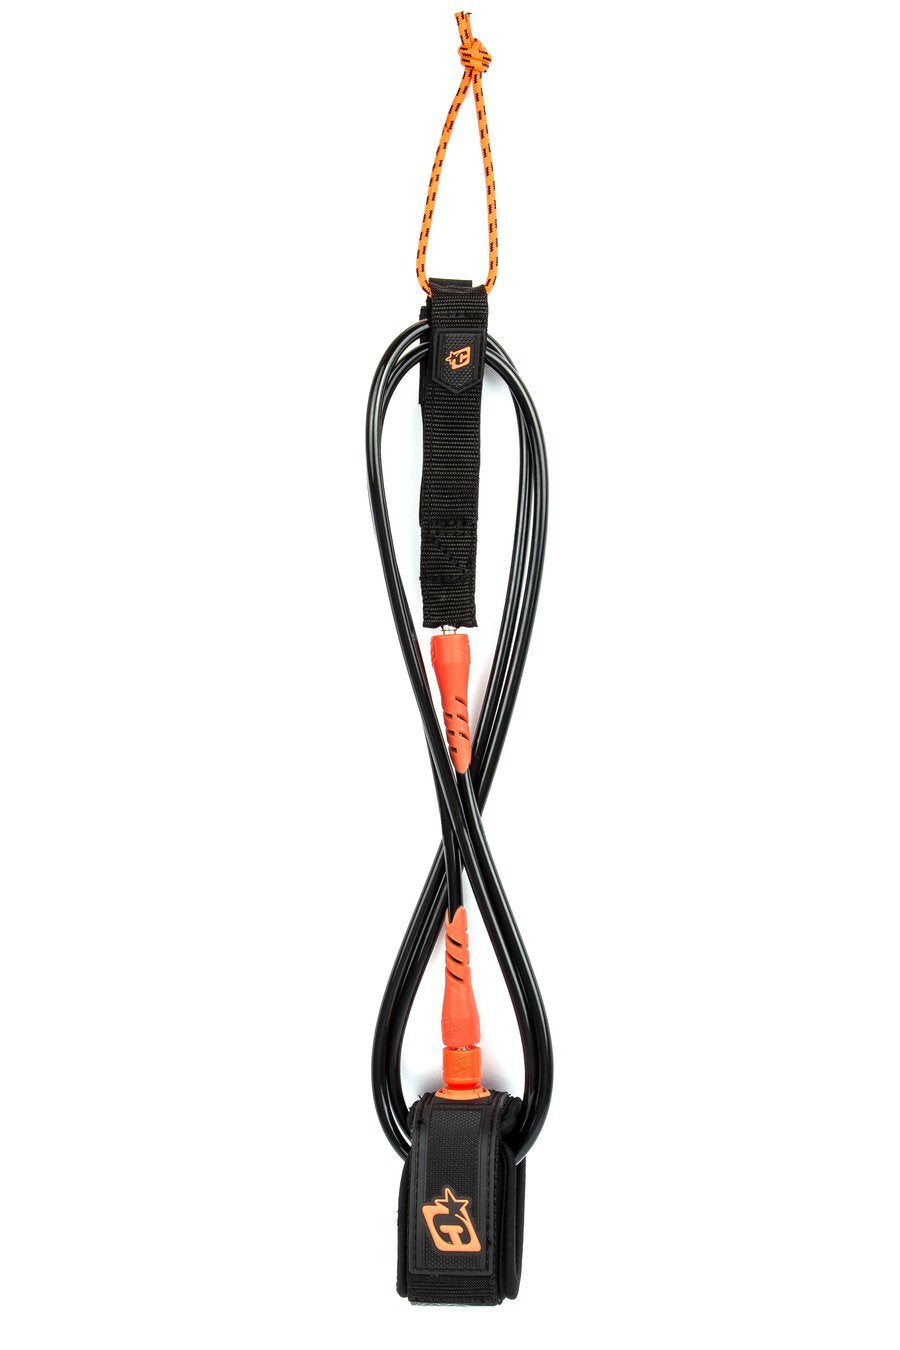 7' Creatures of Leisure Pro Leash - Colors Vary